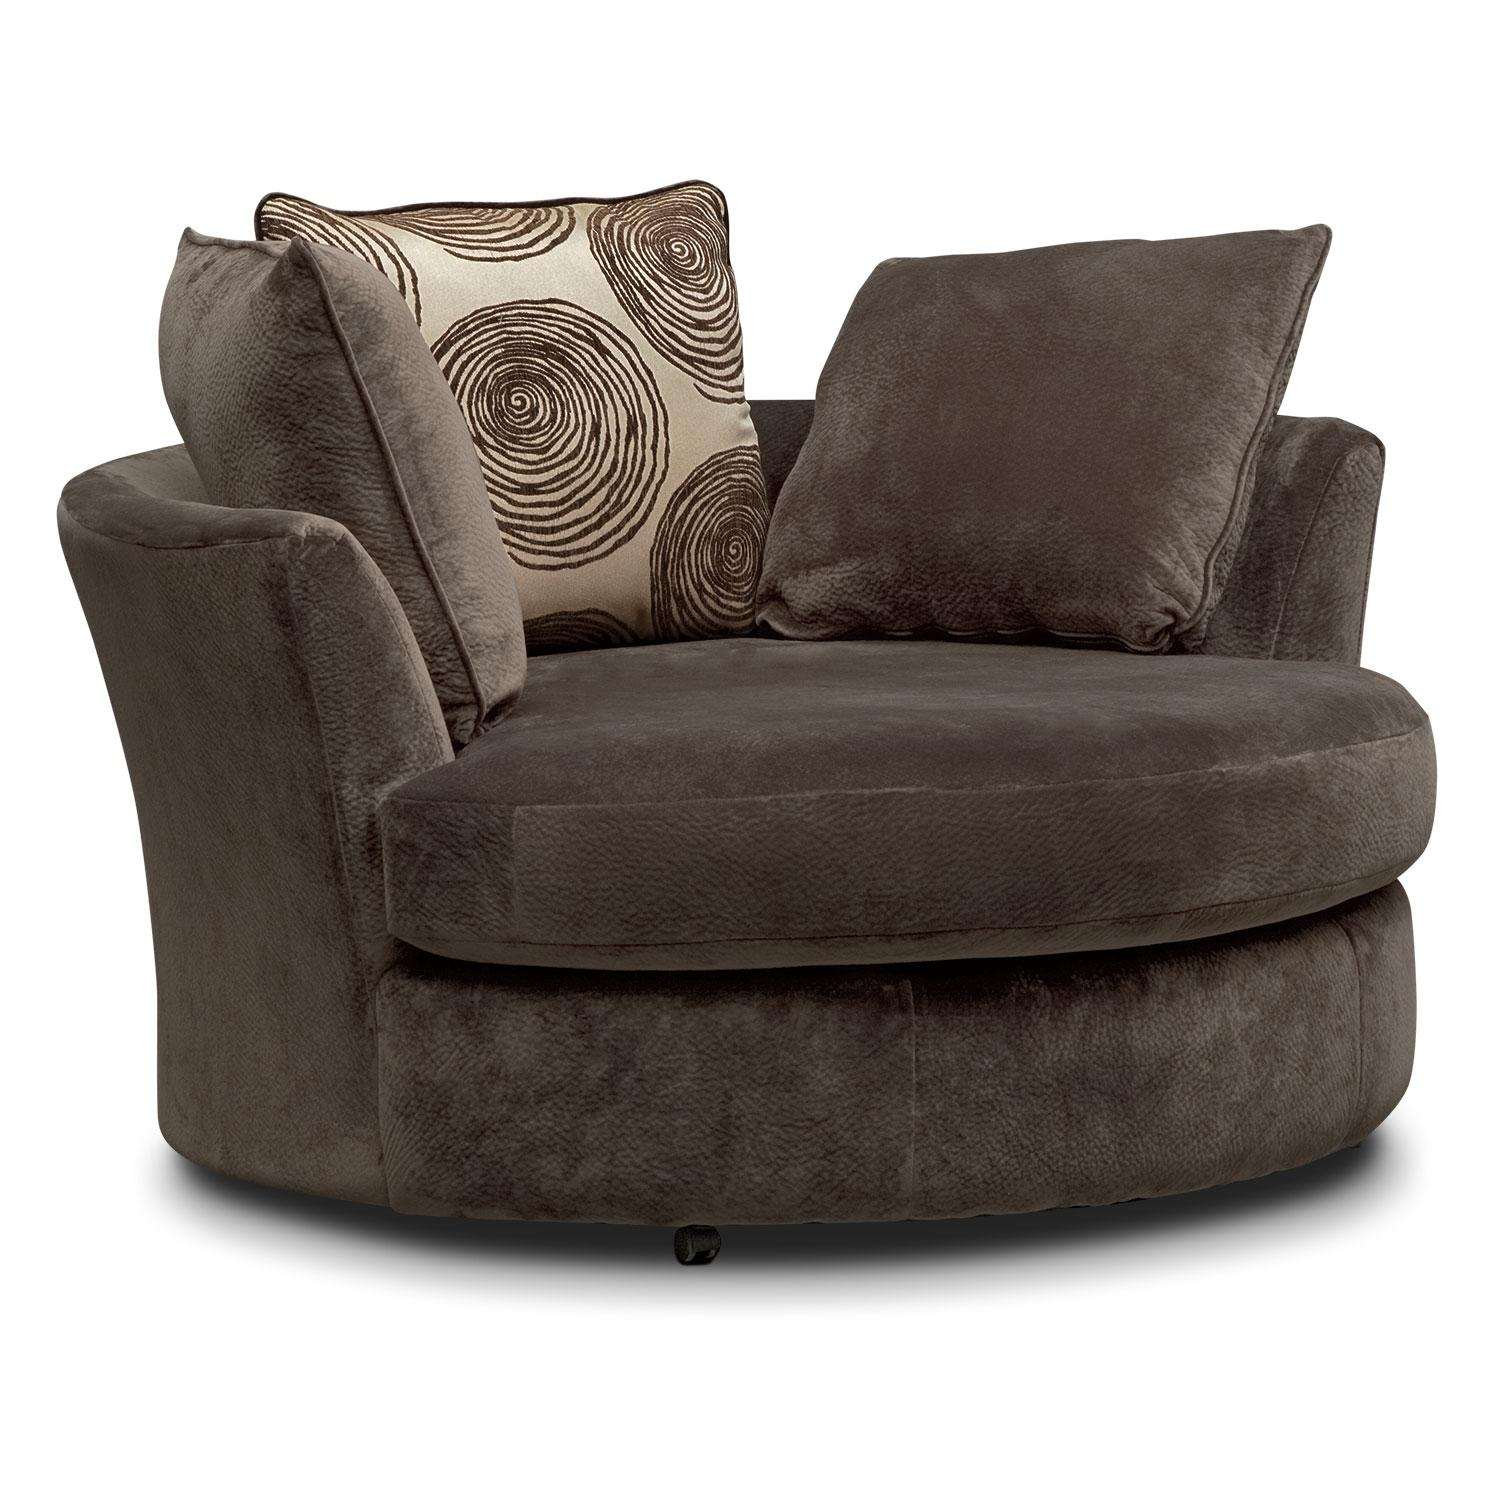 Cordelle Swivel Chair - Chocolate | Value City Furniture regarding Round Swivel Sofa Chairs